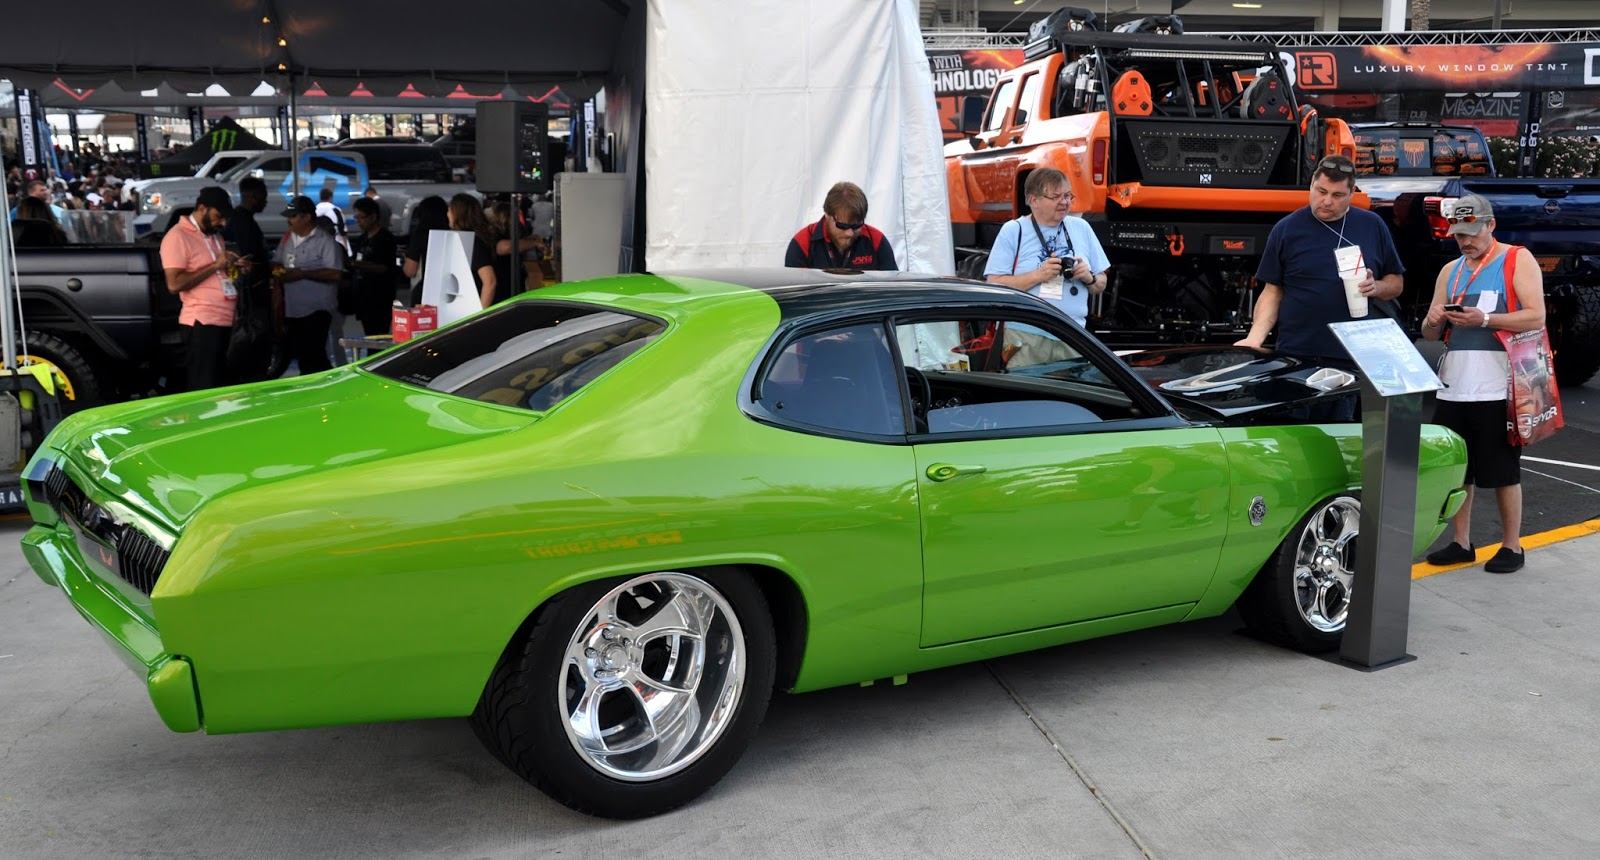 a7ea8b19 Just A Car Guy: the '71 Demon from the Vintage Hot Rod Shop